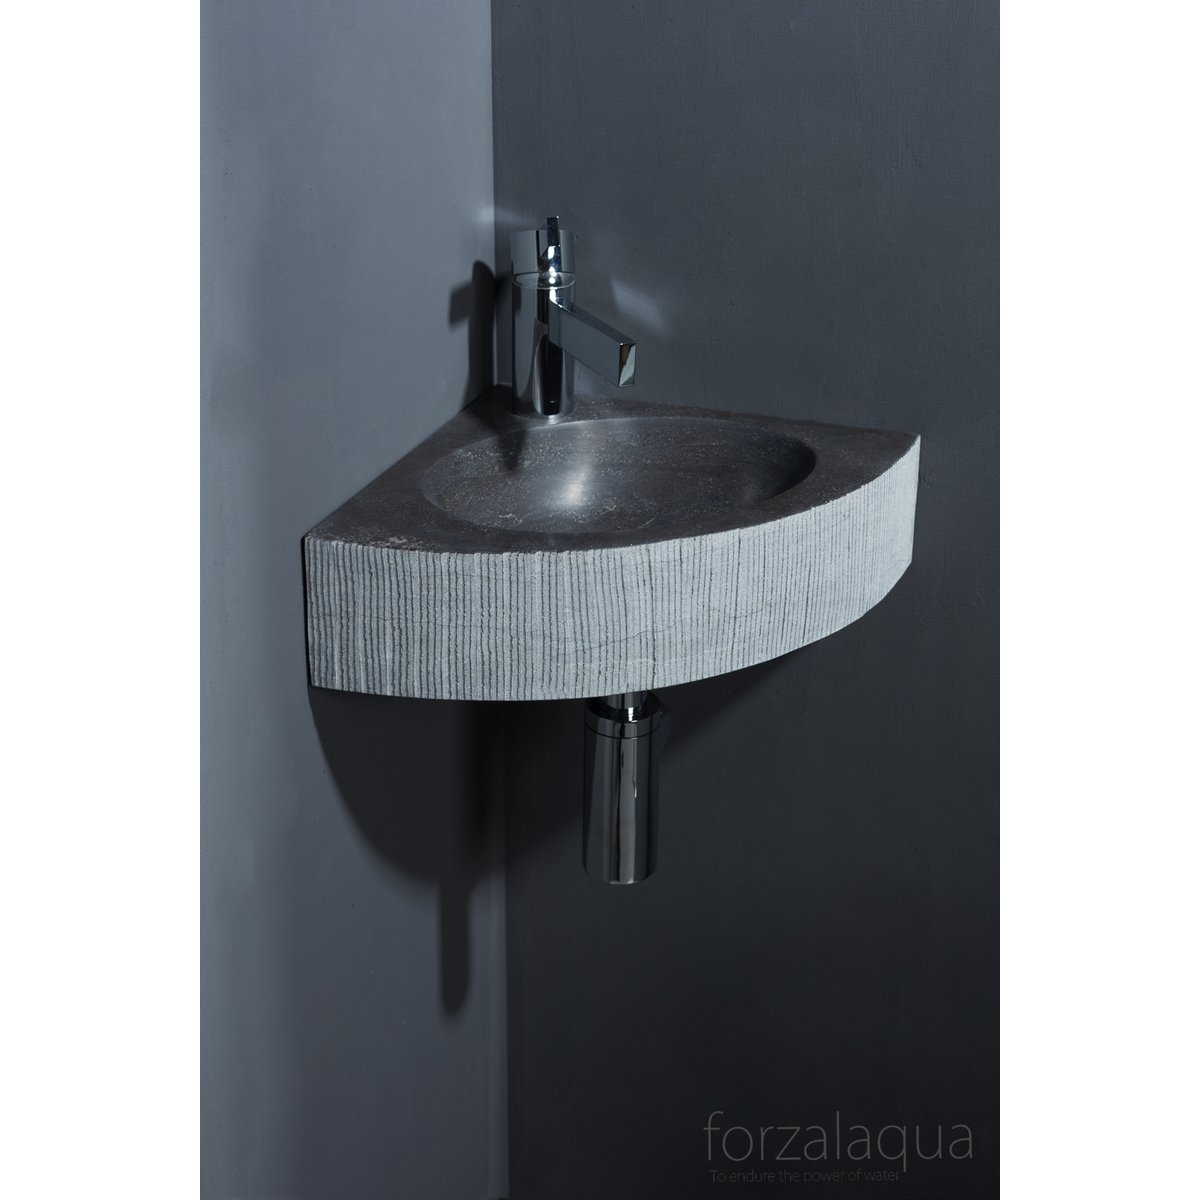 forzalaqua turino lavabo wc d 39 angle 30x30x10cm triangulaire pierre de taille cisel bleu gris. Black Bedroom Furniture Sets. Home Design Ideas